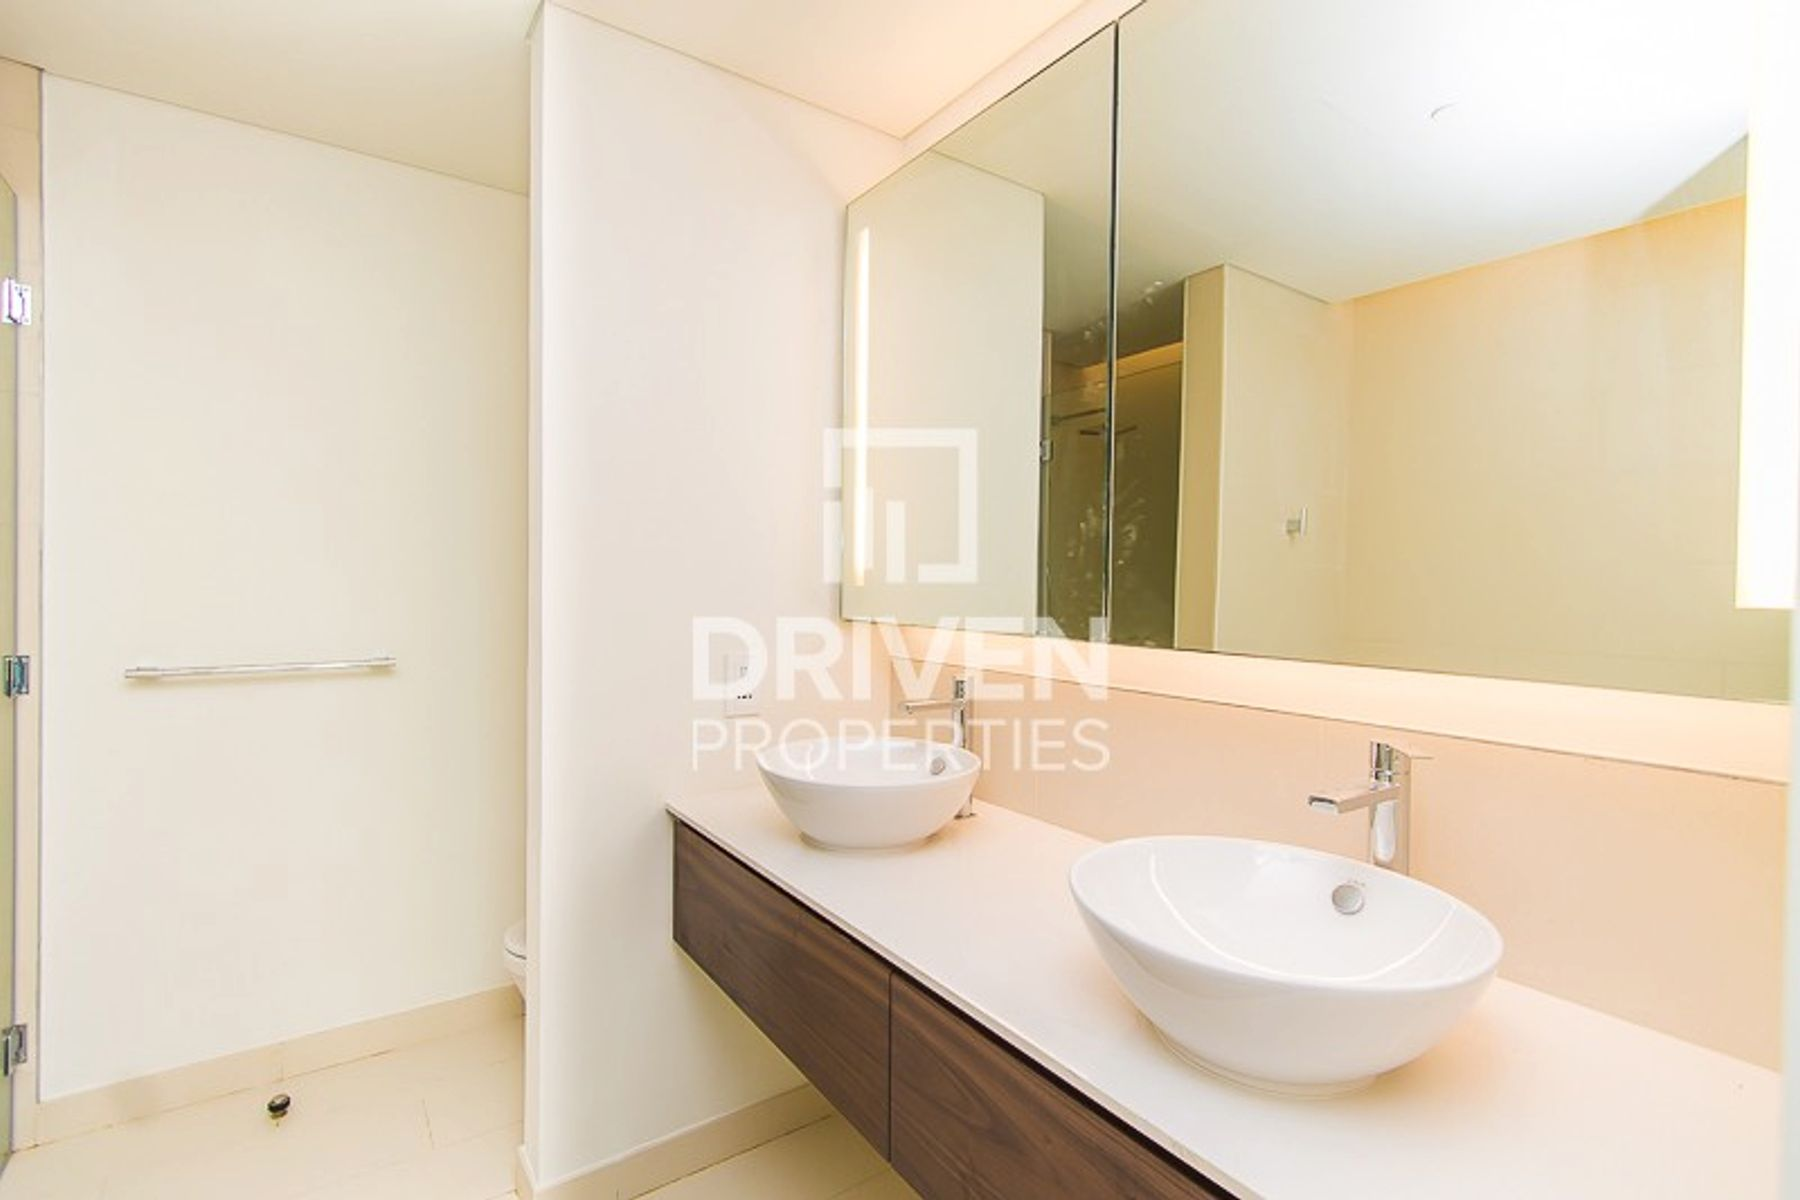 Apartment for Sale in Building 9, City Walk